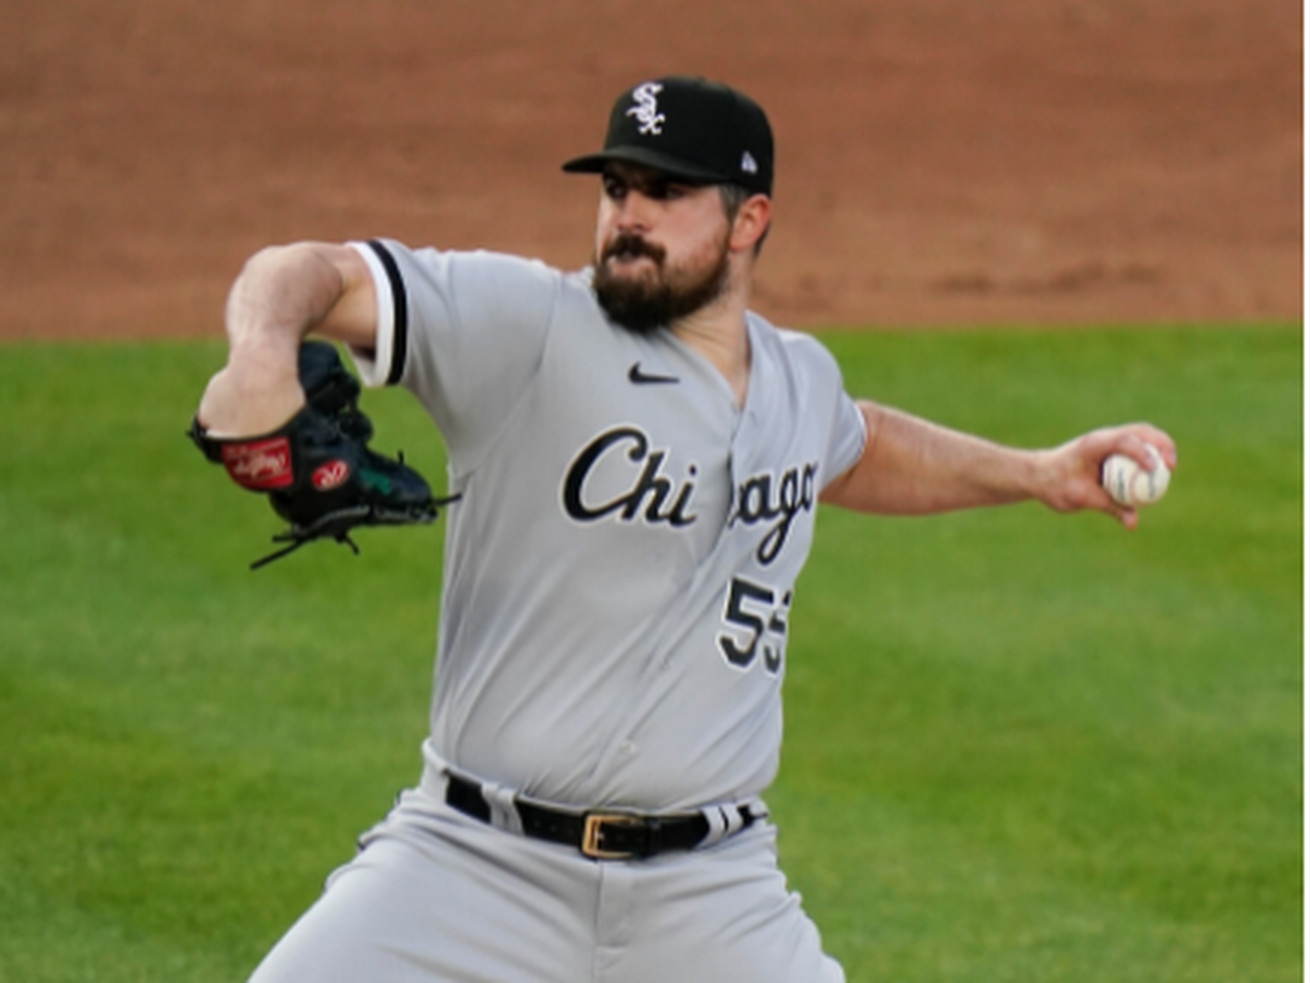 Sox left-hander Carlos Rodon has struck out 5.17 batters for every walk he has allowed this season.